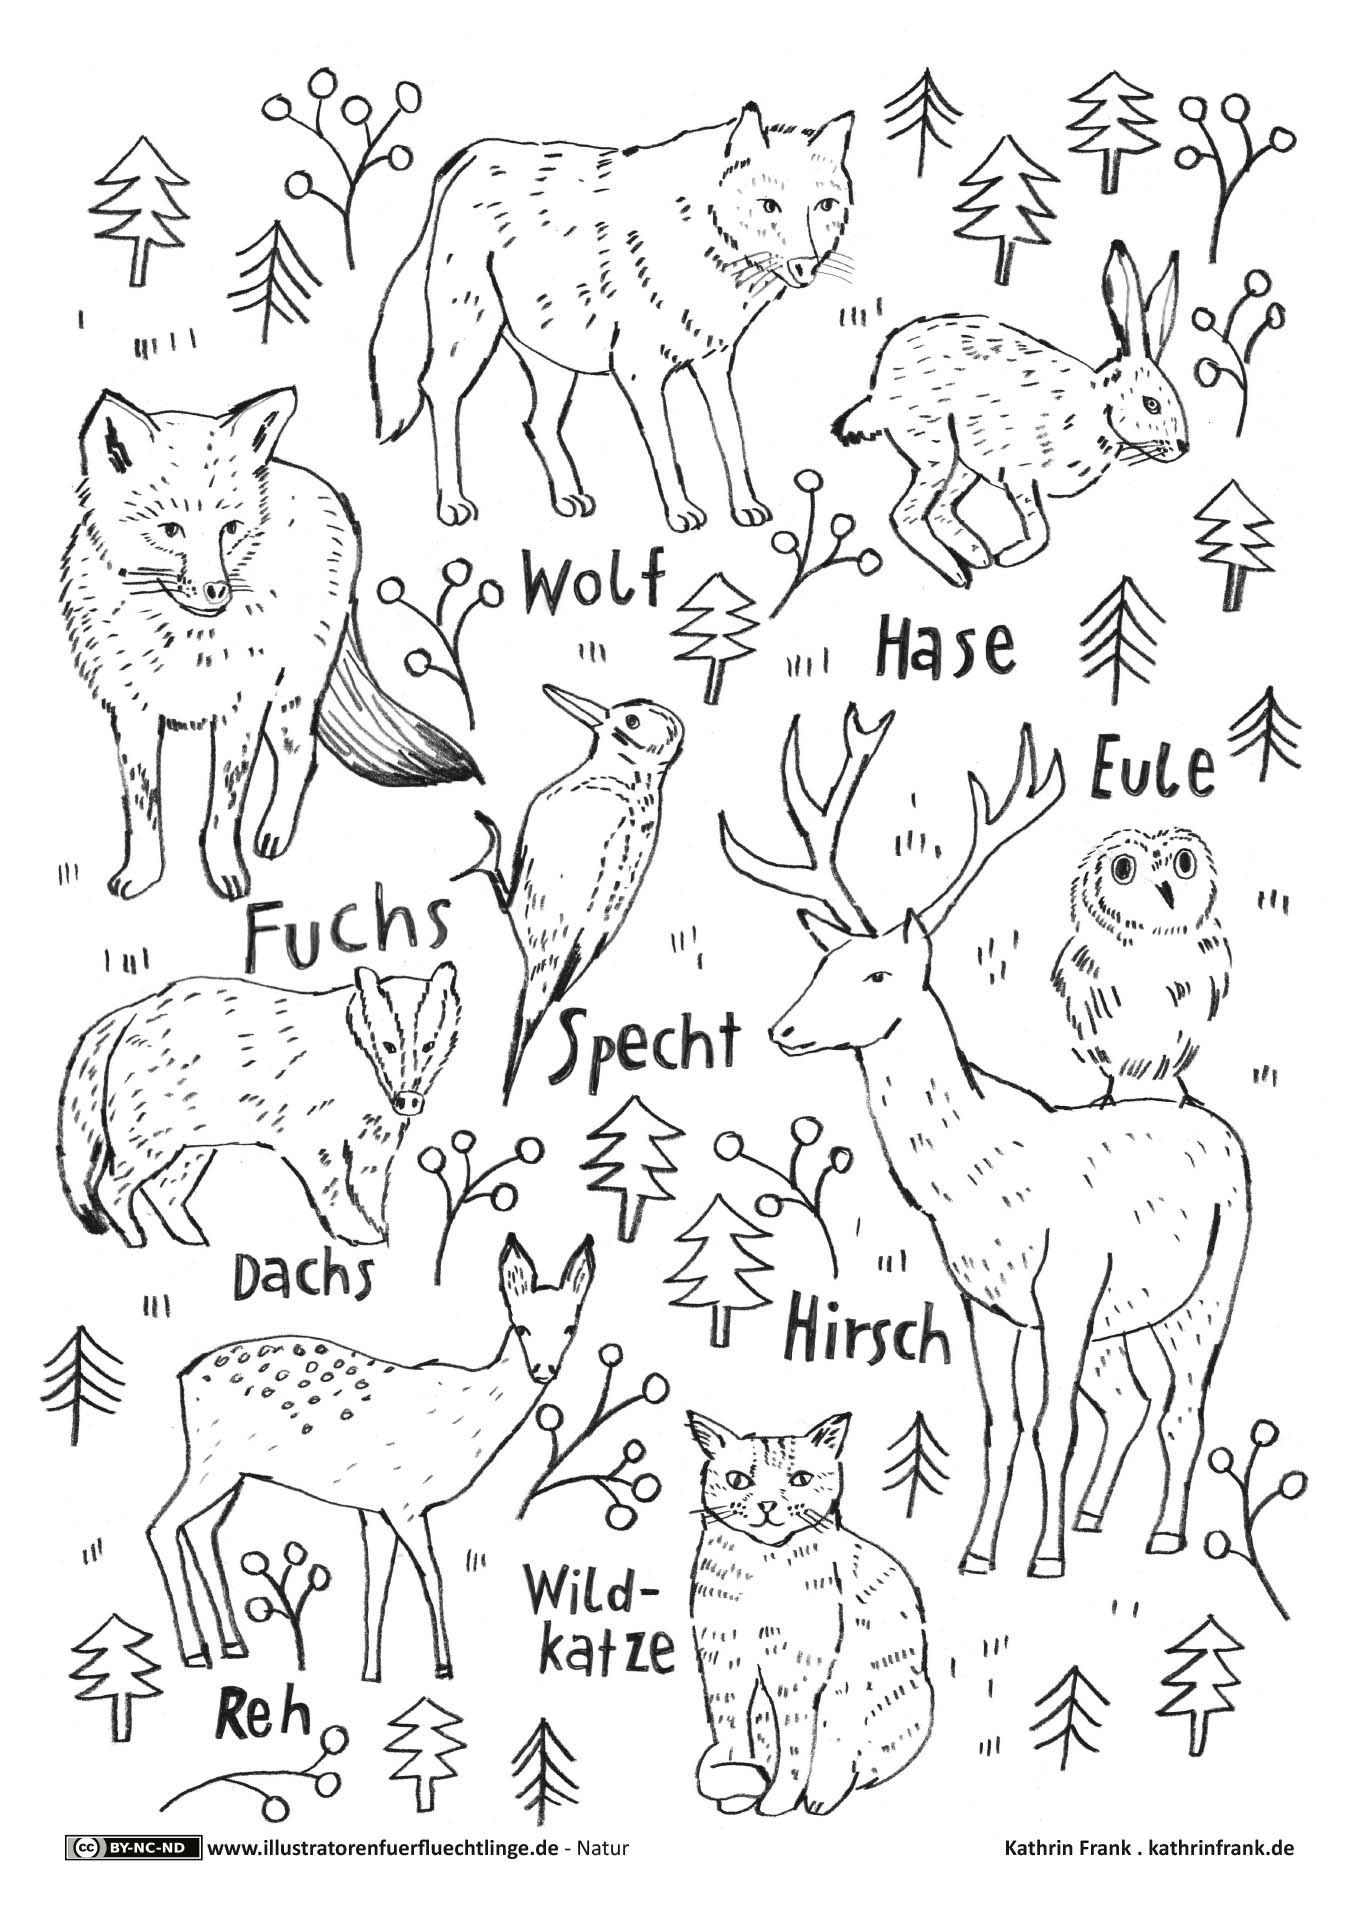 Ausmalbild Oder Abpausen Fur Kinder Natur Waldtiere Wood Animals Coloring Page For Ki Kindergarten Coloring Pages Coloring Pages Birthday Coloring Pages